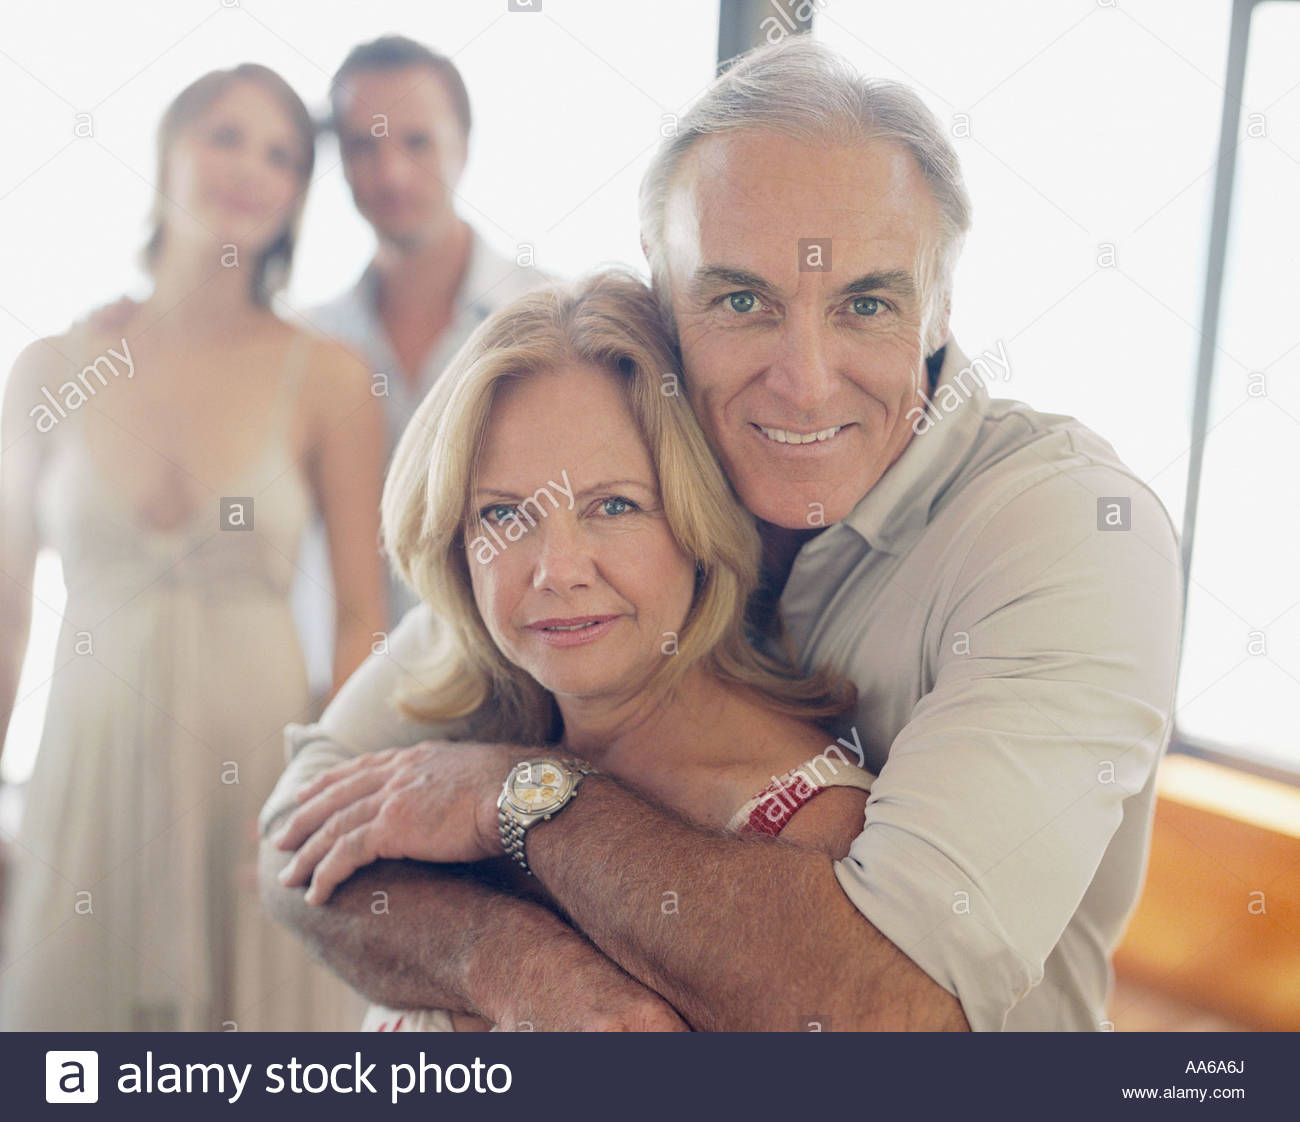 Mature couple with younger couple in background - Stock Image